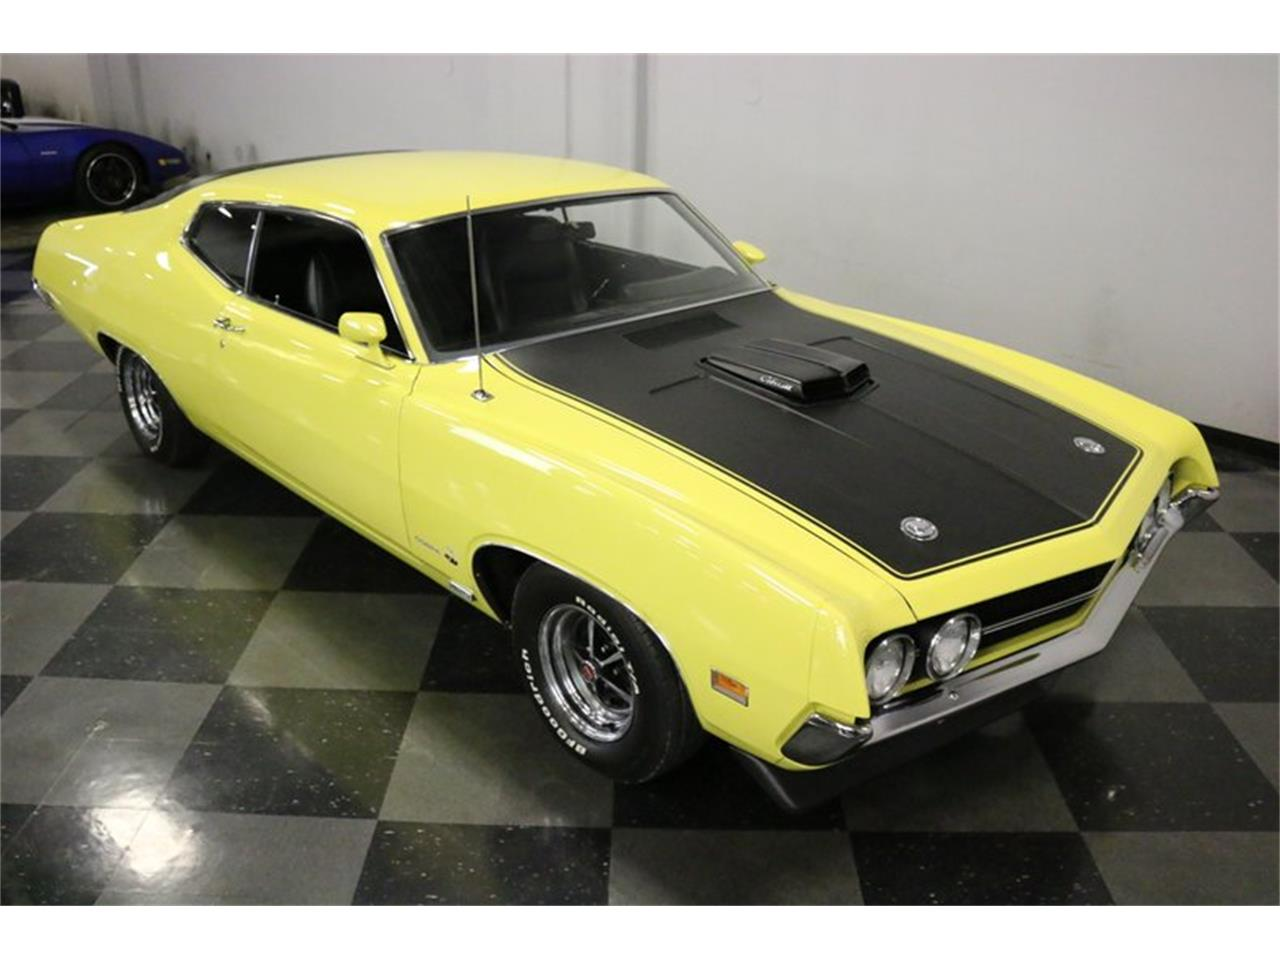 Large Picture of 1970 Torino located in Ft Worth Texas Offered by Streetside Classics - Dallas / Fort Worth - NNFR